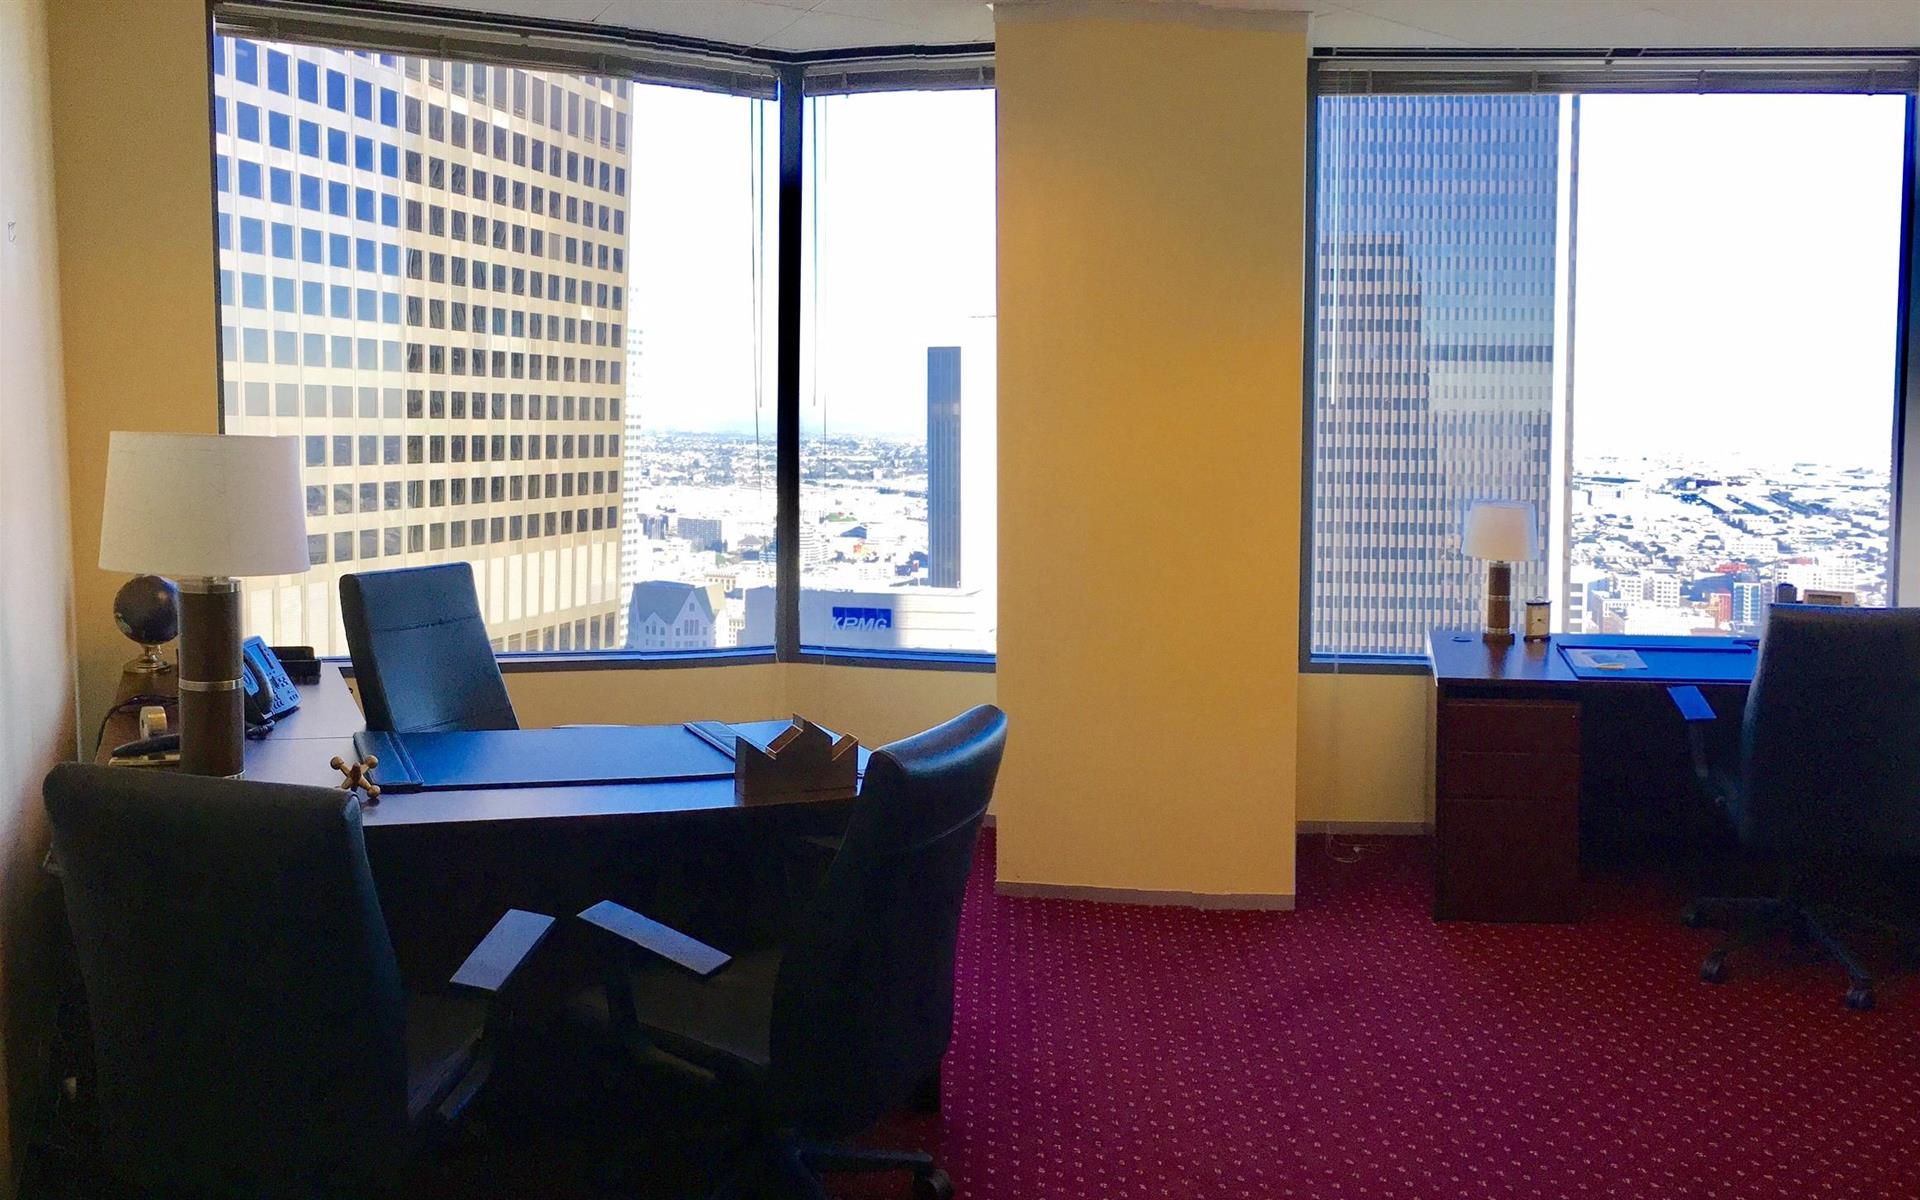 Servcorp - Downtown Los Angeles - 3 Person Office w/ View (Suite 4)